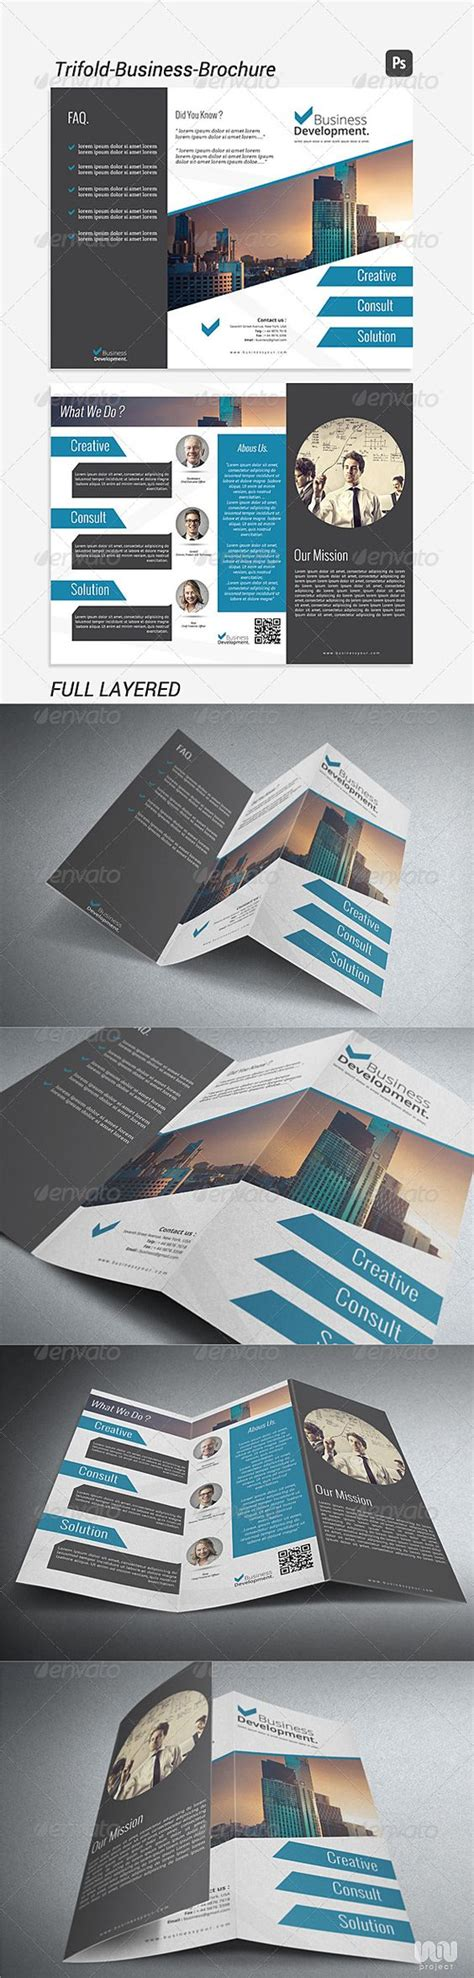 brochure templates for photoshop cs3 pinterest the world s catalog of ideas